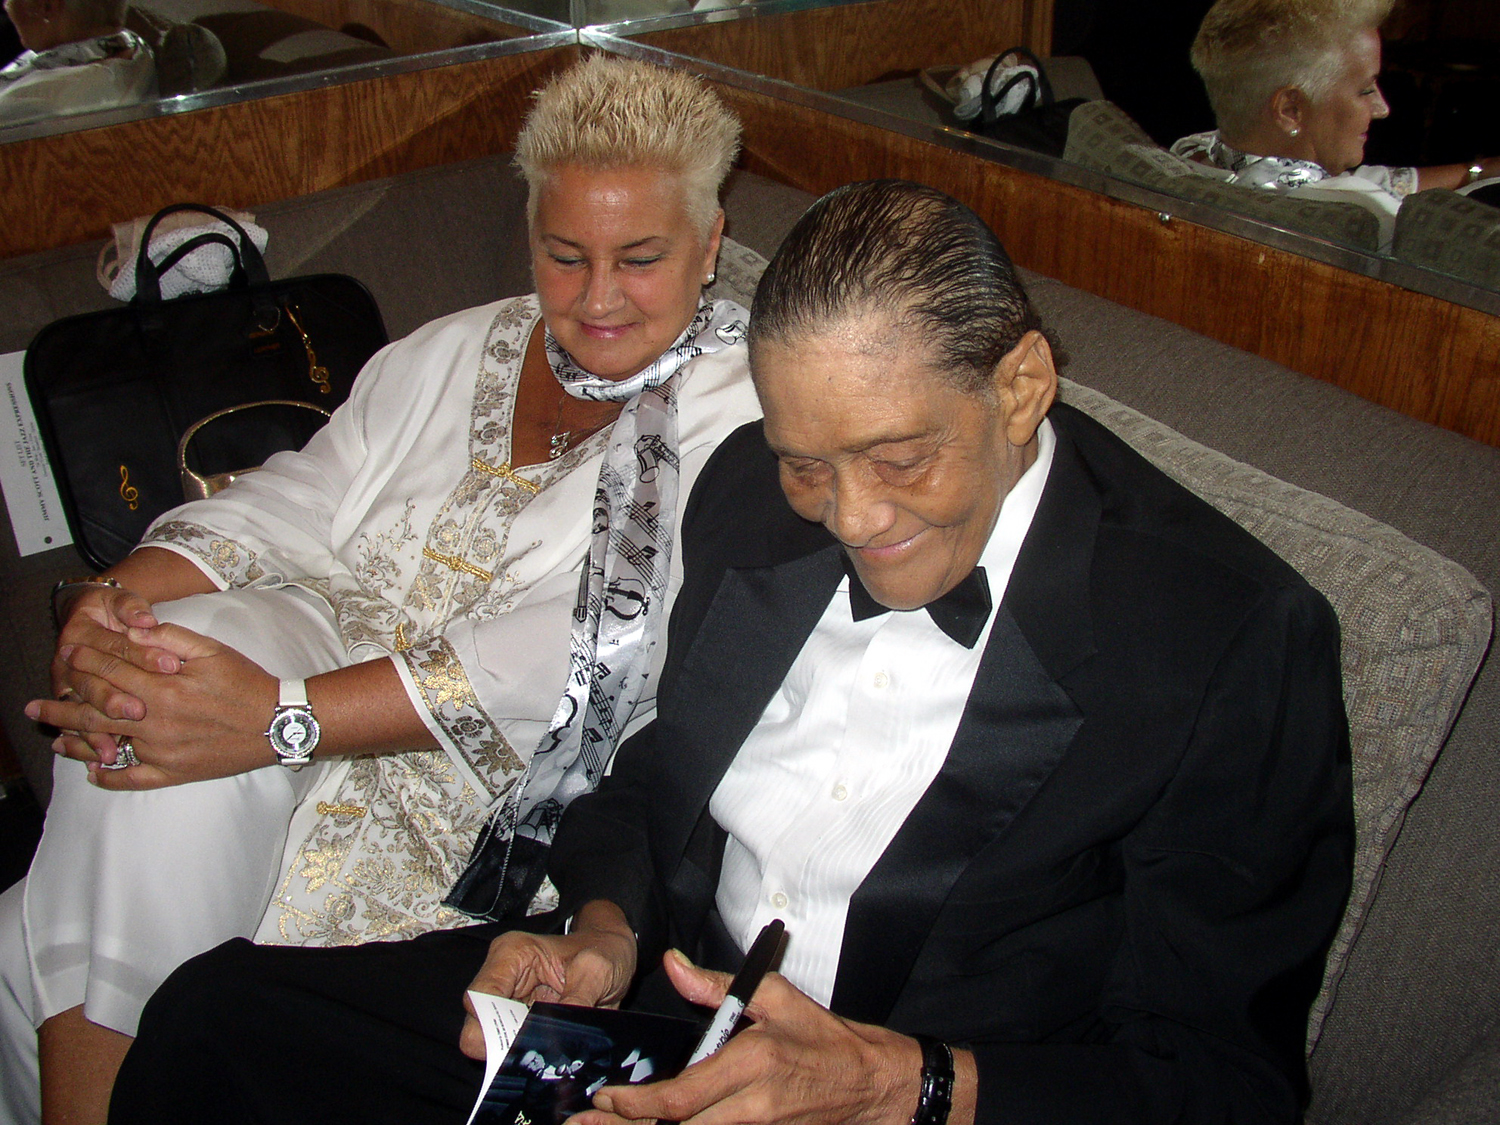 Jimmy Scott, at a jazz club in NYC, 2004